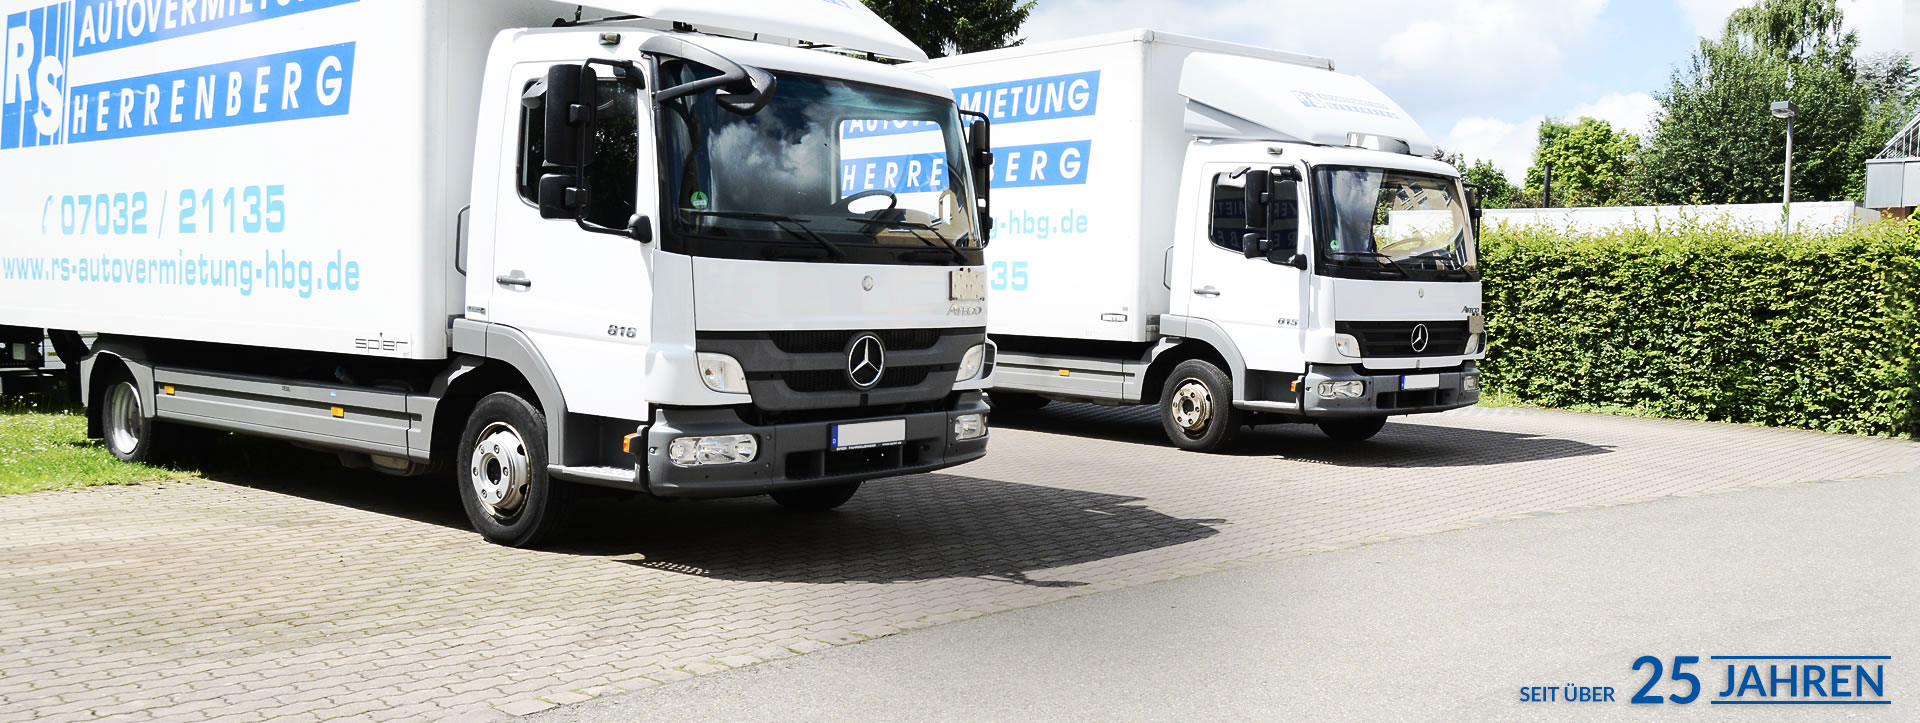 sprinter mieten stuttgart langer miet service gmbh lkw vermietung in plochingen bei mercedes. Black Bedroom Furniture Sets. Home Design Ideas